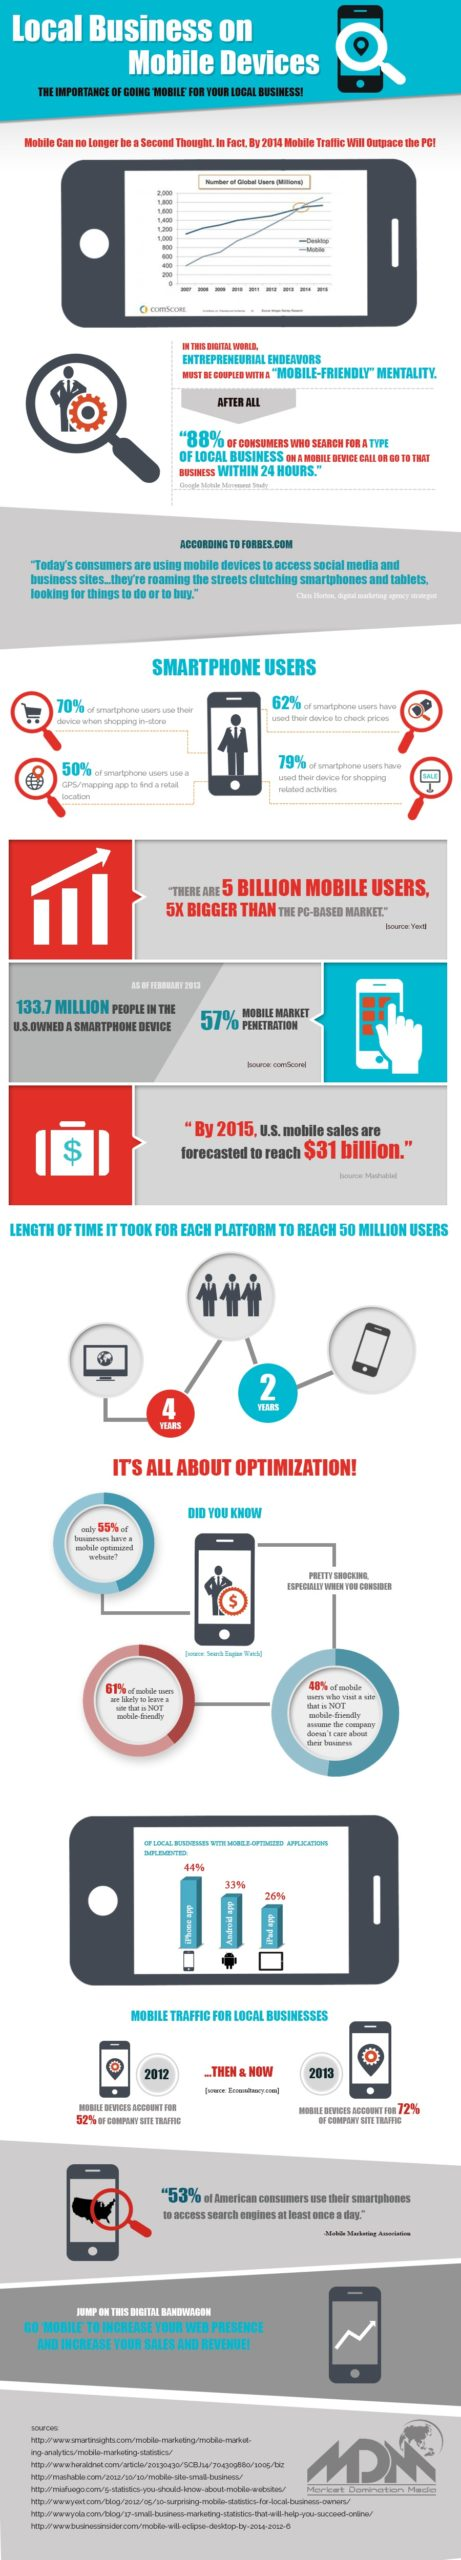 infographie-importance-visibilite-mobile